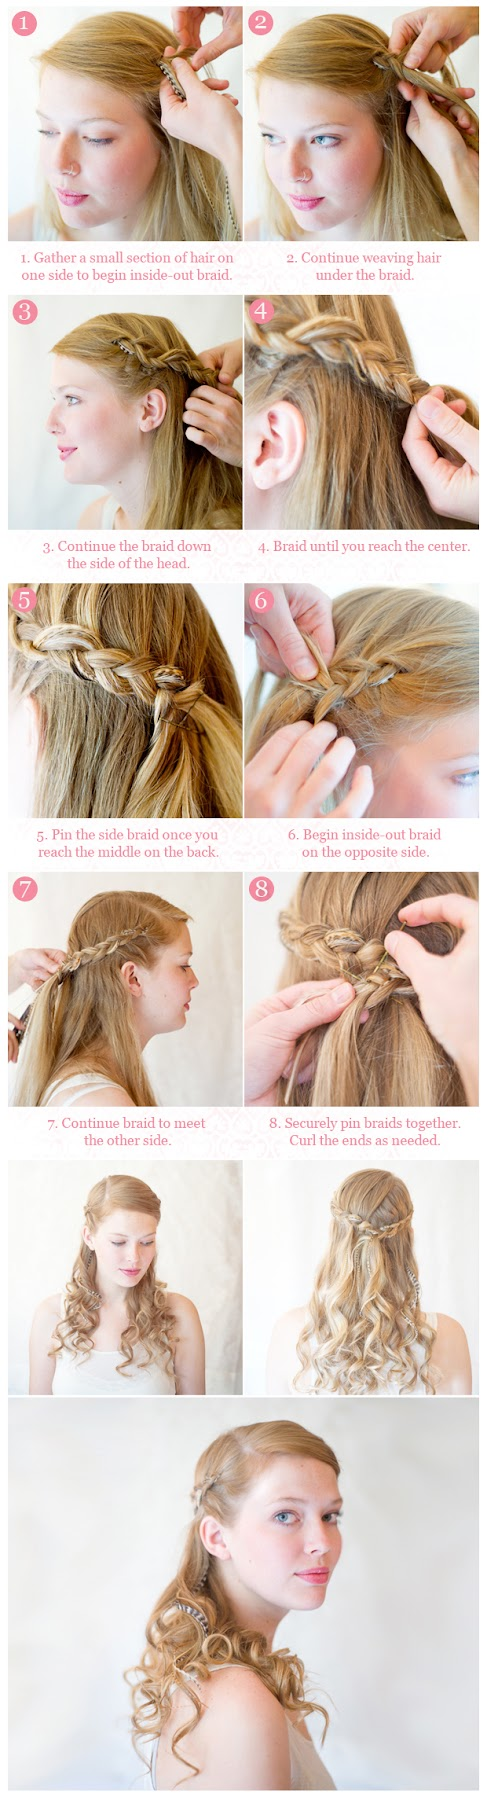 Braids Hairstyles Step by Step